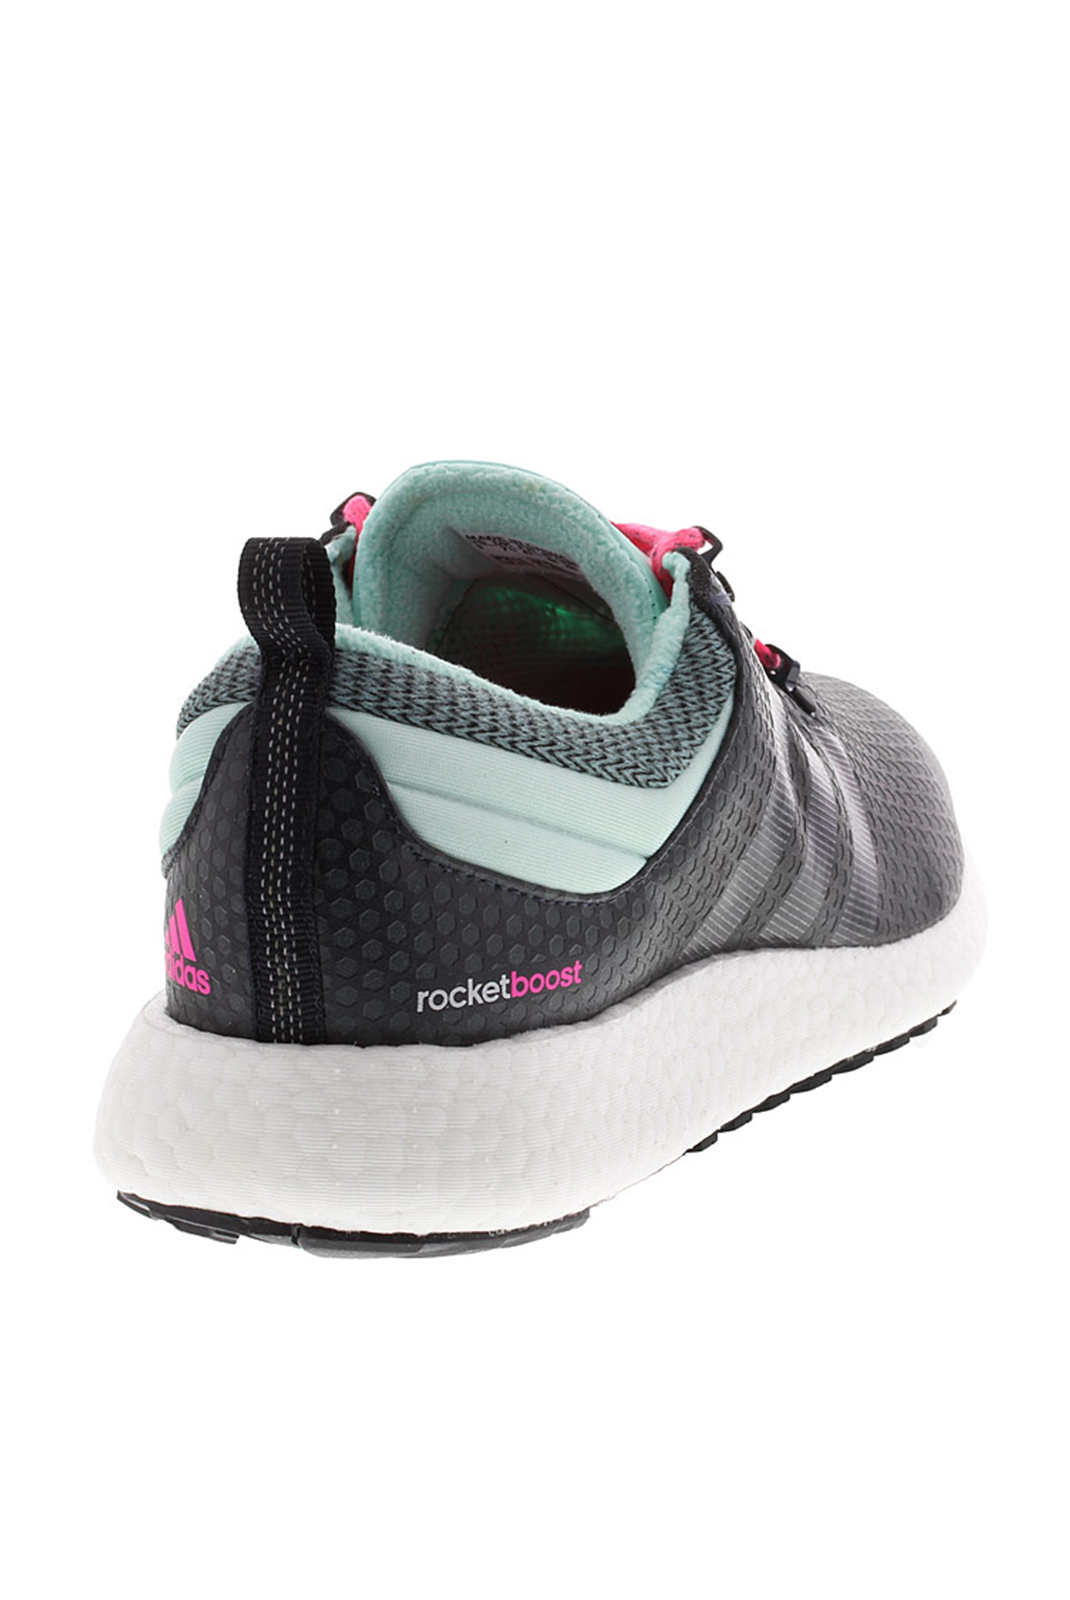 Baskets / Sneakers  Adidas M29685 CH ROCKET BOOST GRINUIT